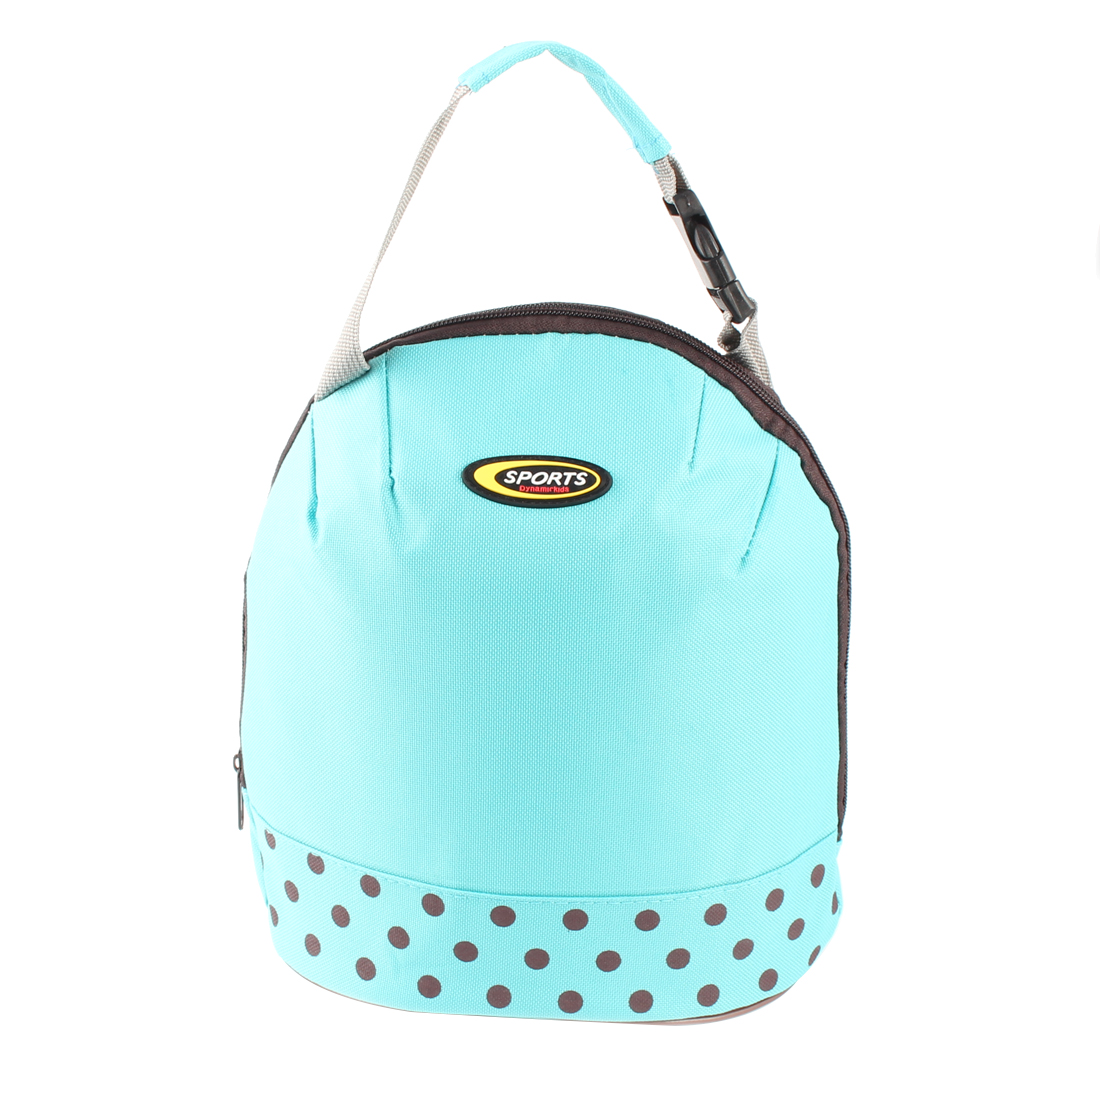 Picnic Travel Insulated Thermal Cooler Box Carry Tote Lunch Storage Bento Bag Sky Blue